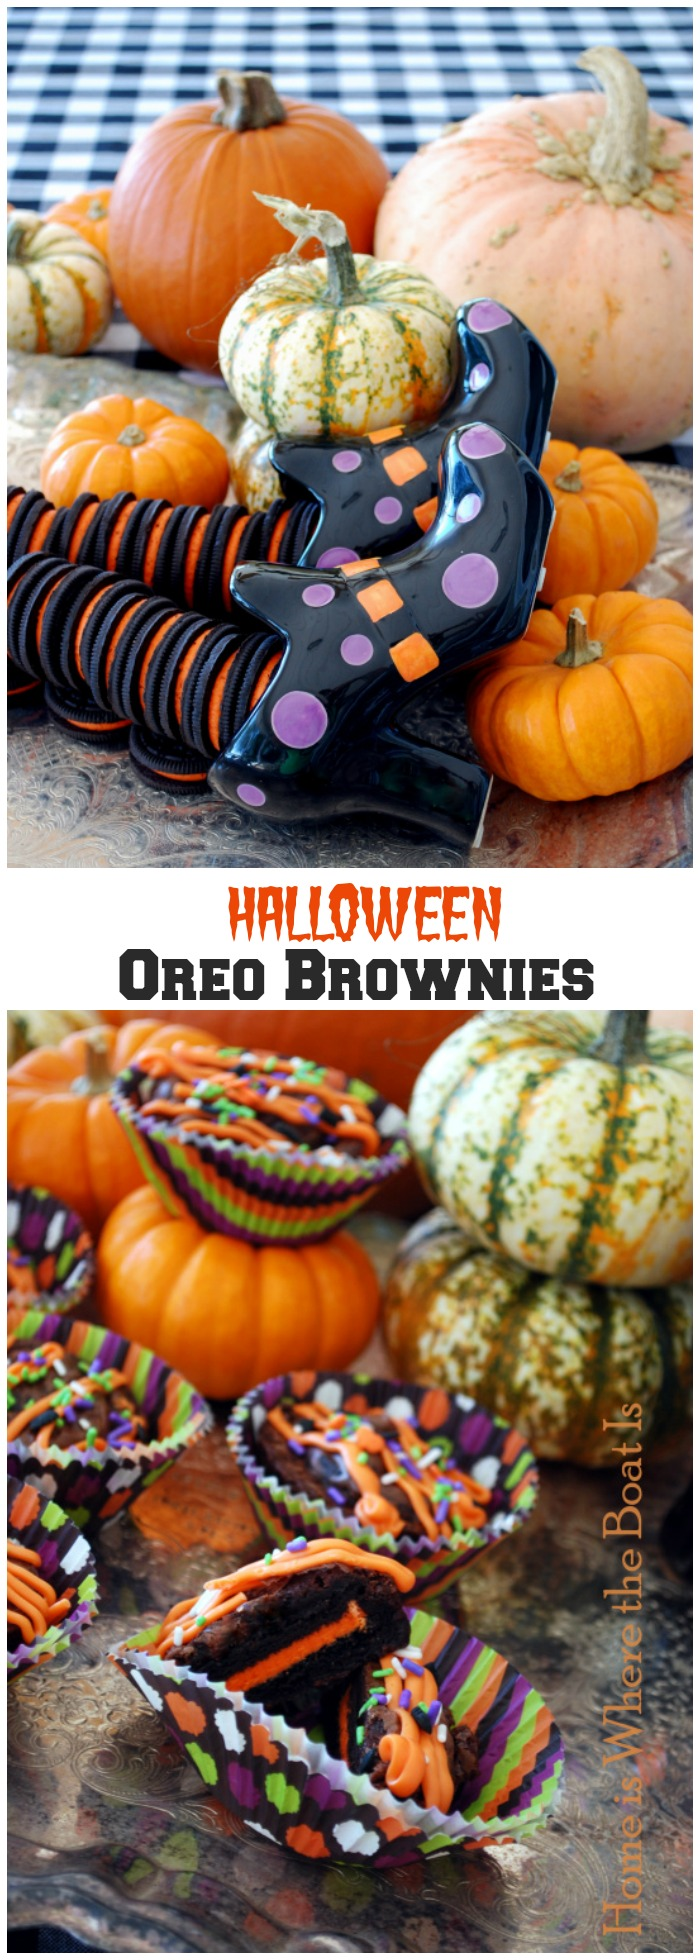 Halloween Oreo Brownies | ©homeiswheretheboatis.net #Halloween #oreo #recipes #browniess